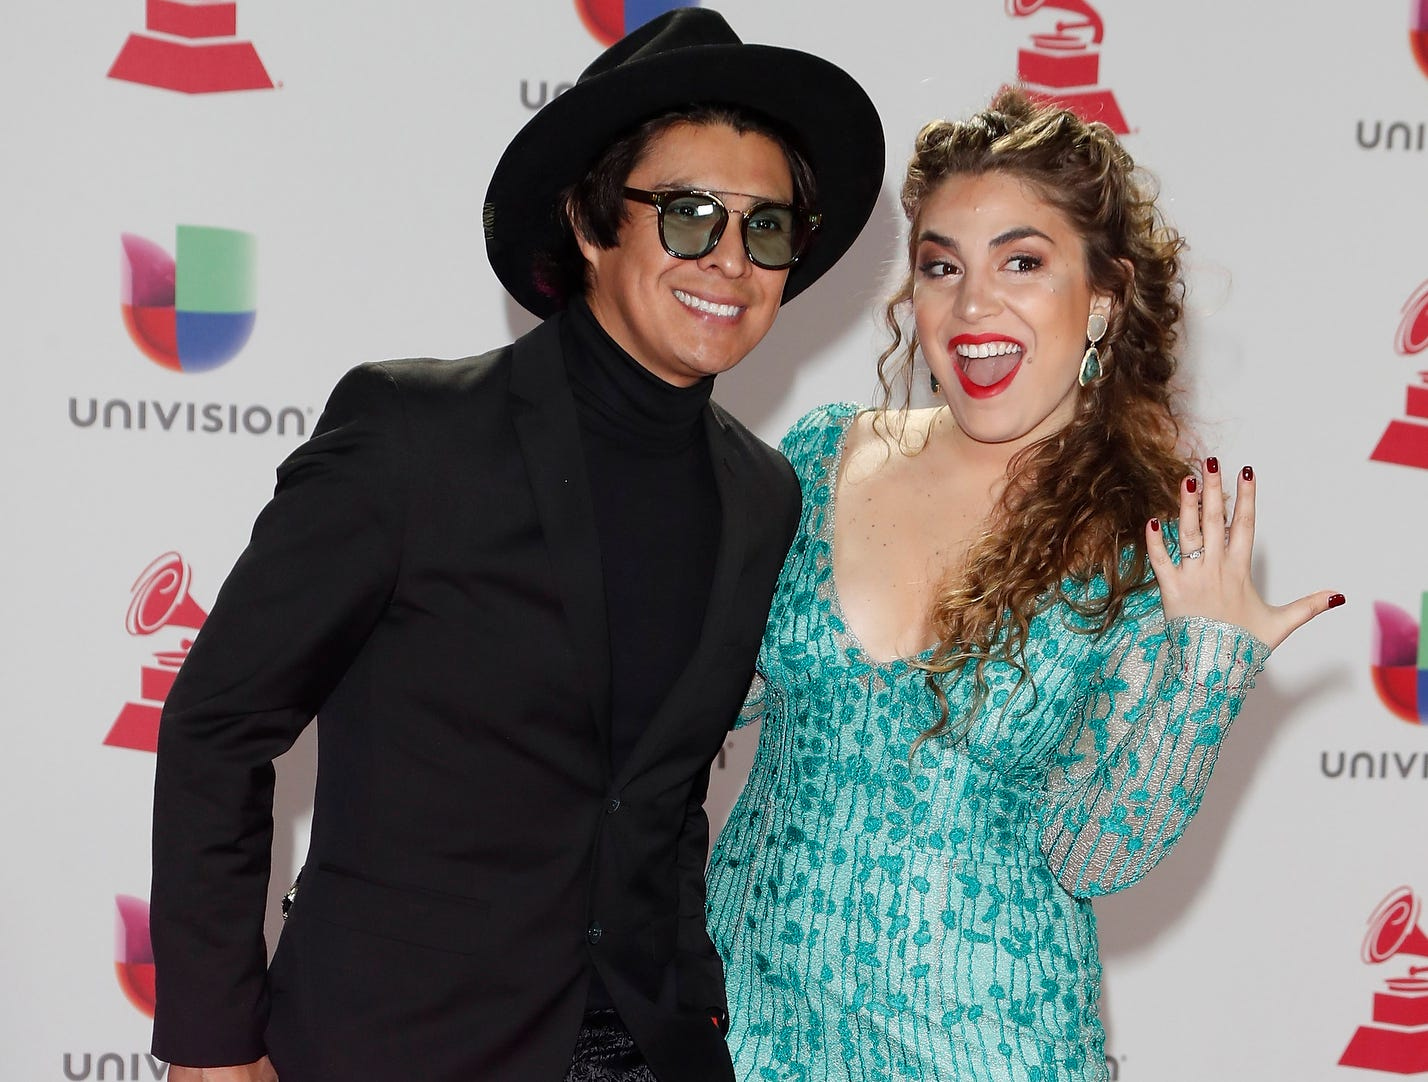 Periko and Jessi León, right, arrive for the 19th Annual Latin Grammy Awards.